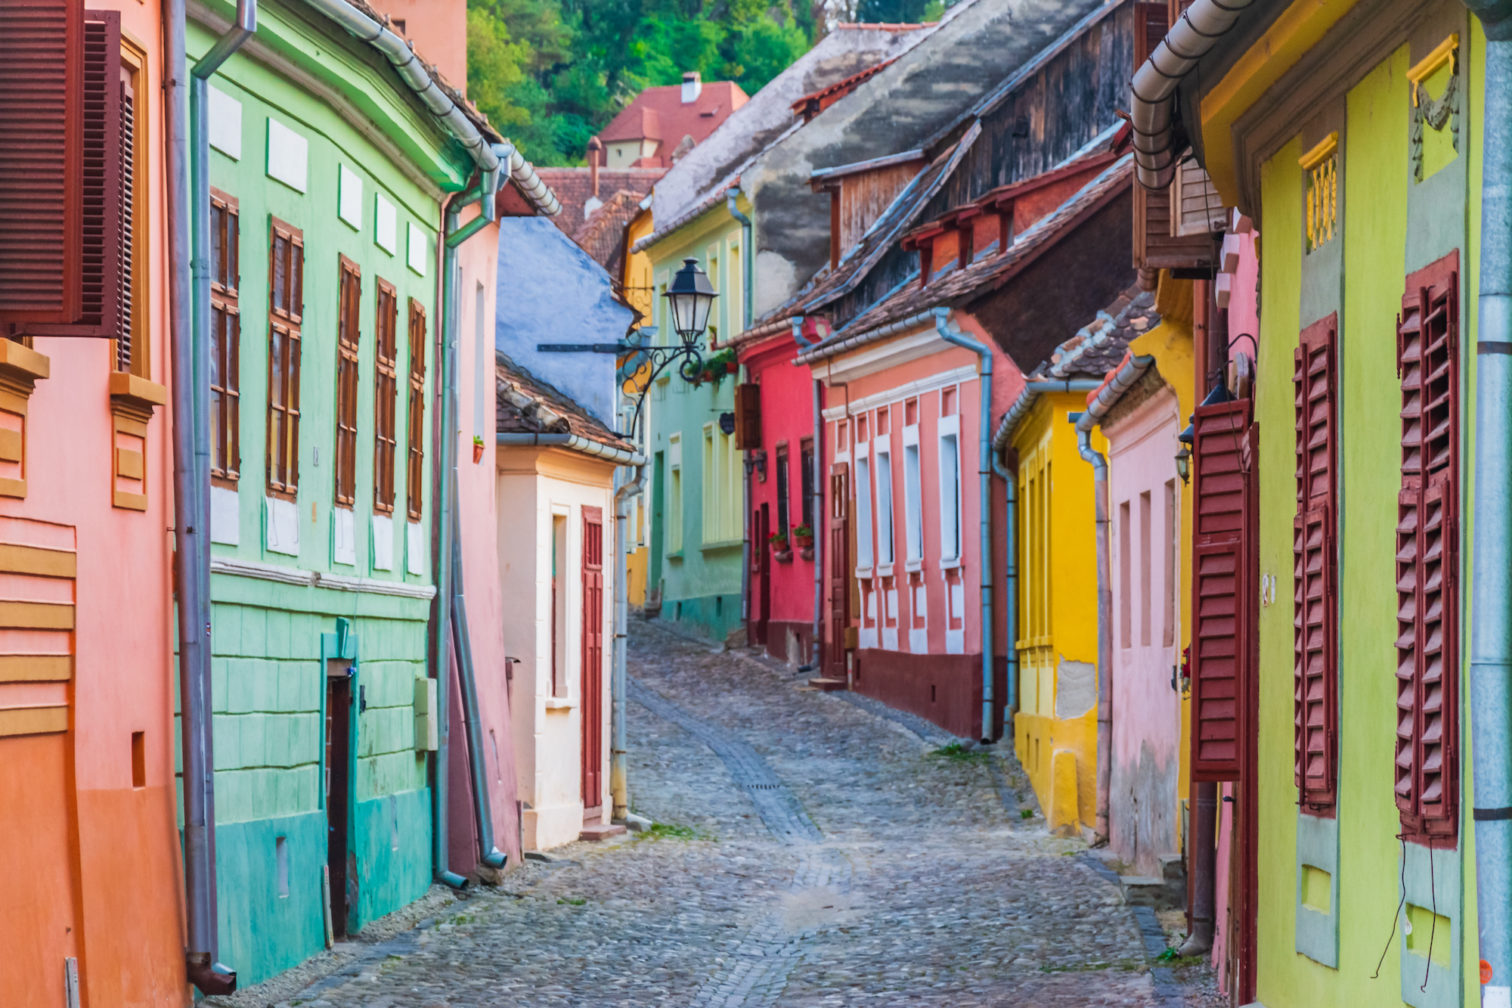 Colorful houses in Sighisoara, Romania.